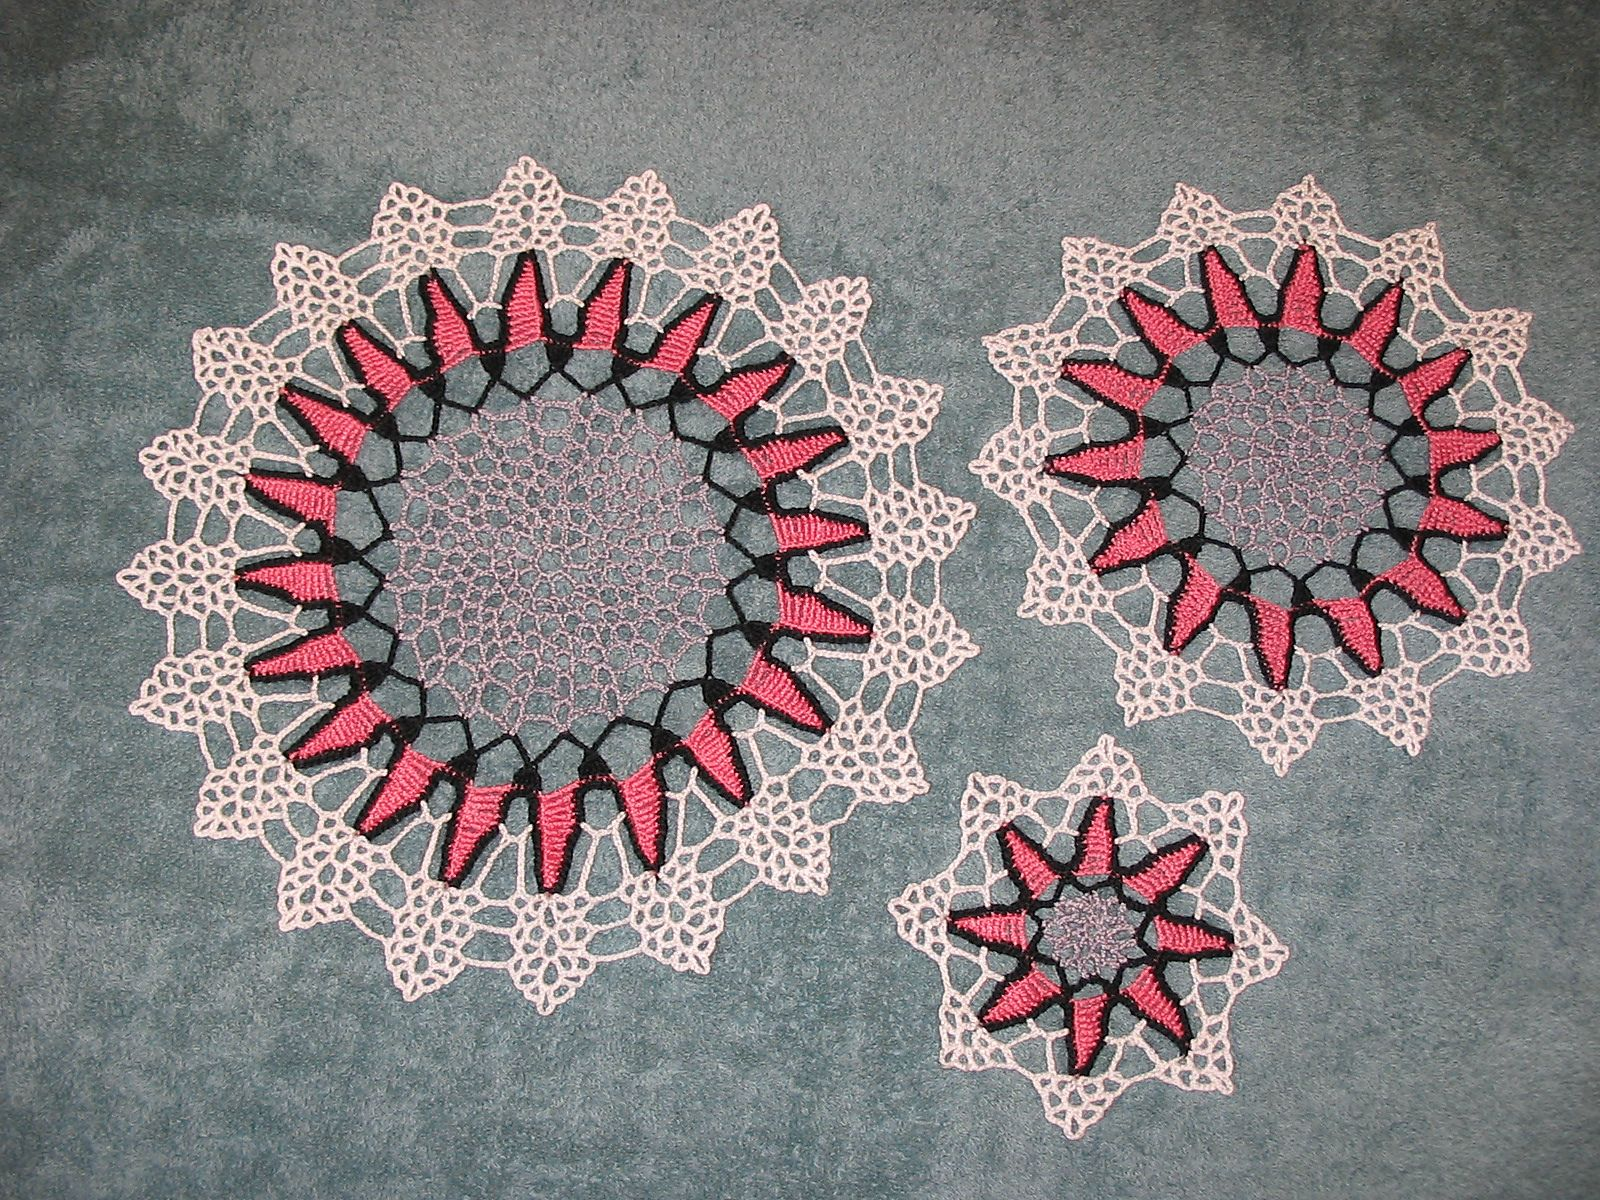 Ravelry doilies in three sizes pattern by workbasket magazine ravelry doilies in three sizes pattern by workbasket magazine bankloansurffo Choice Image